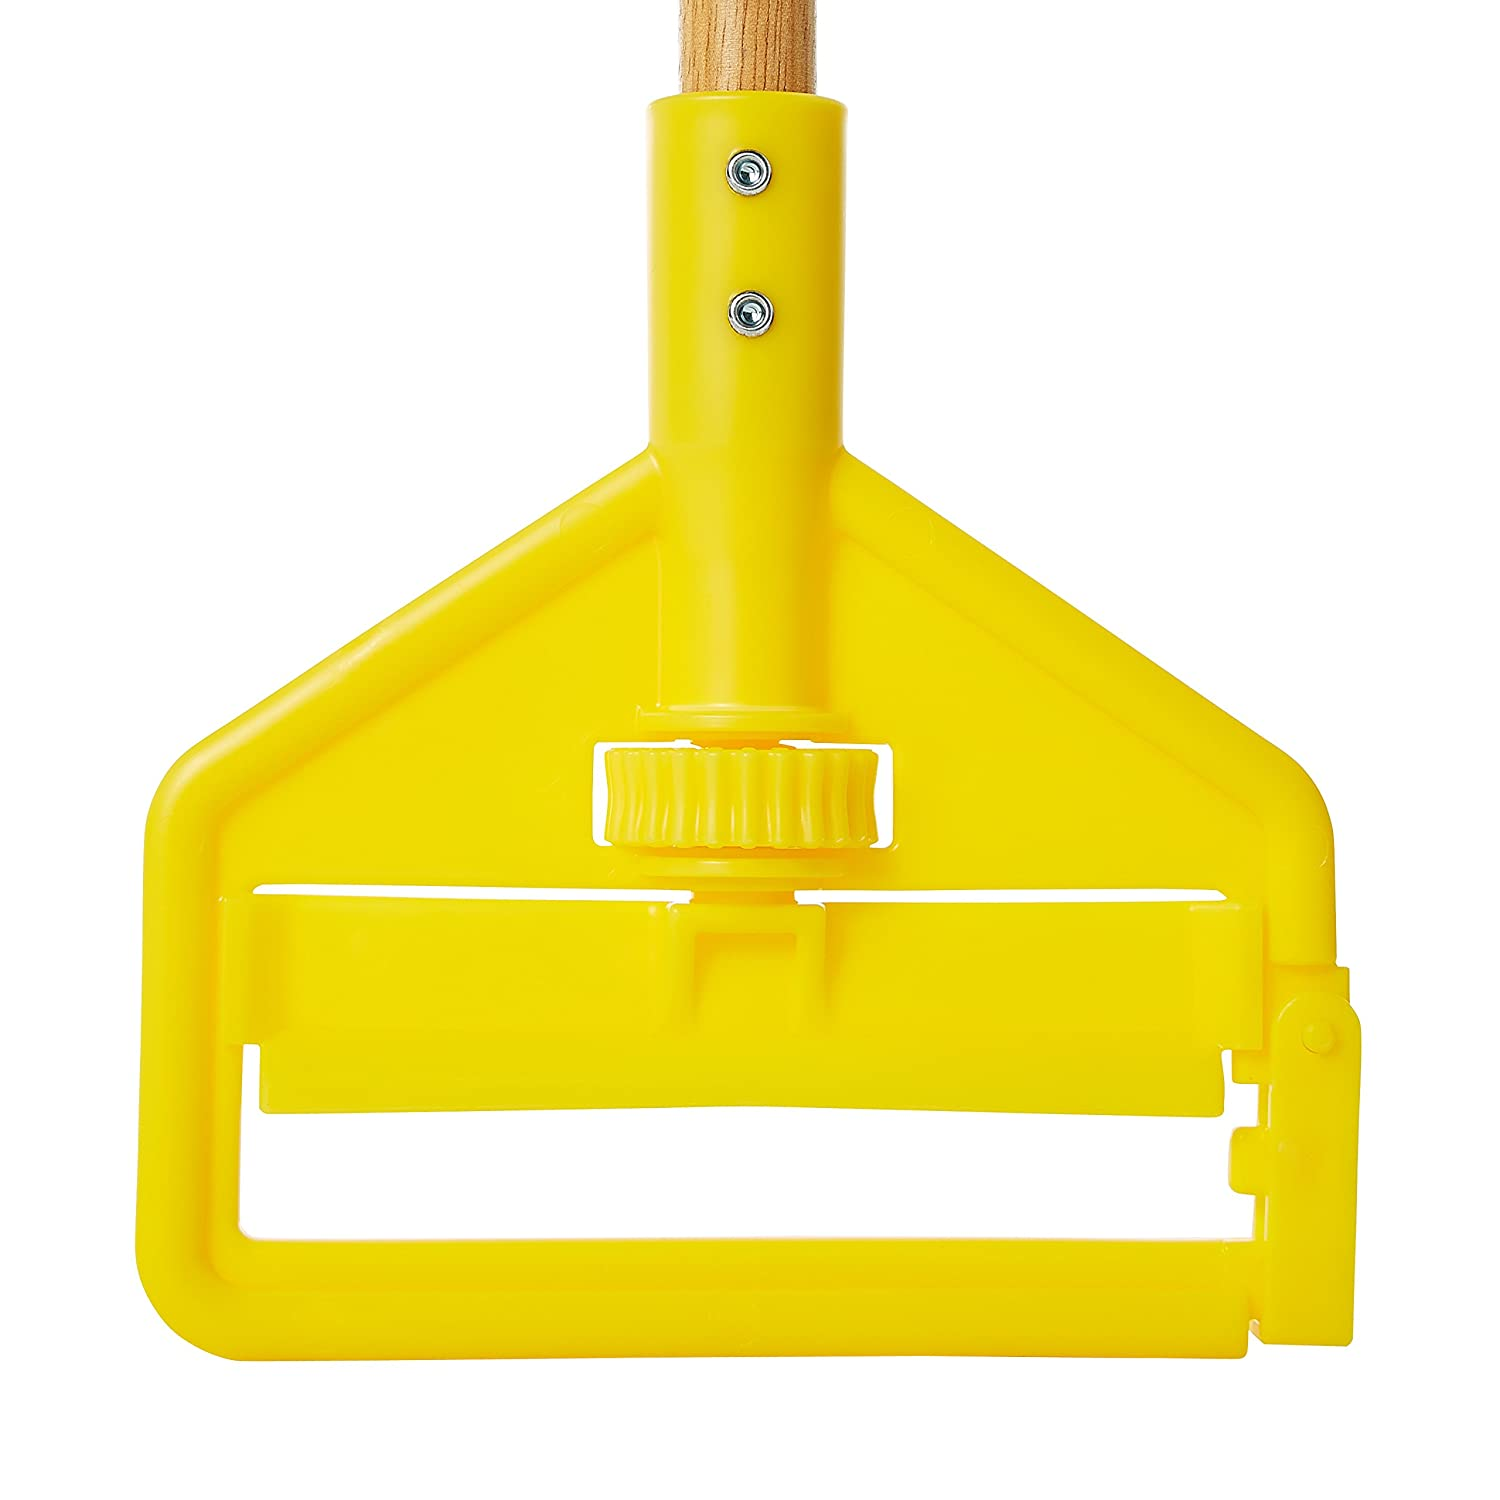 Rubbermaid Commercial H126 Invader Aluminum Side-Gate Wet-Mop Handle 60 Gray//Yellow